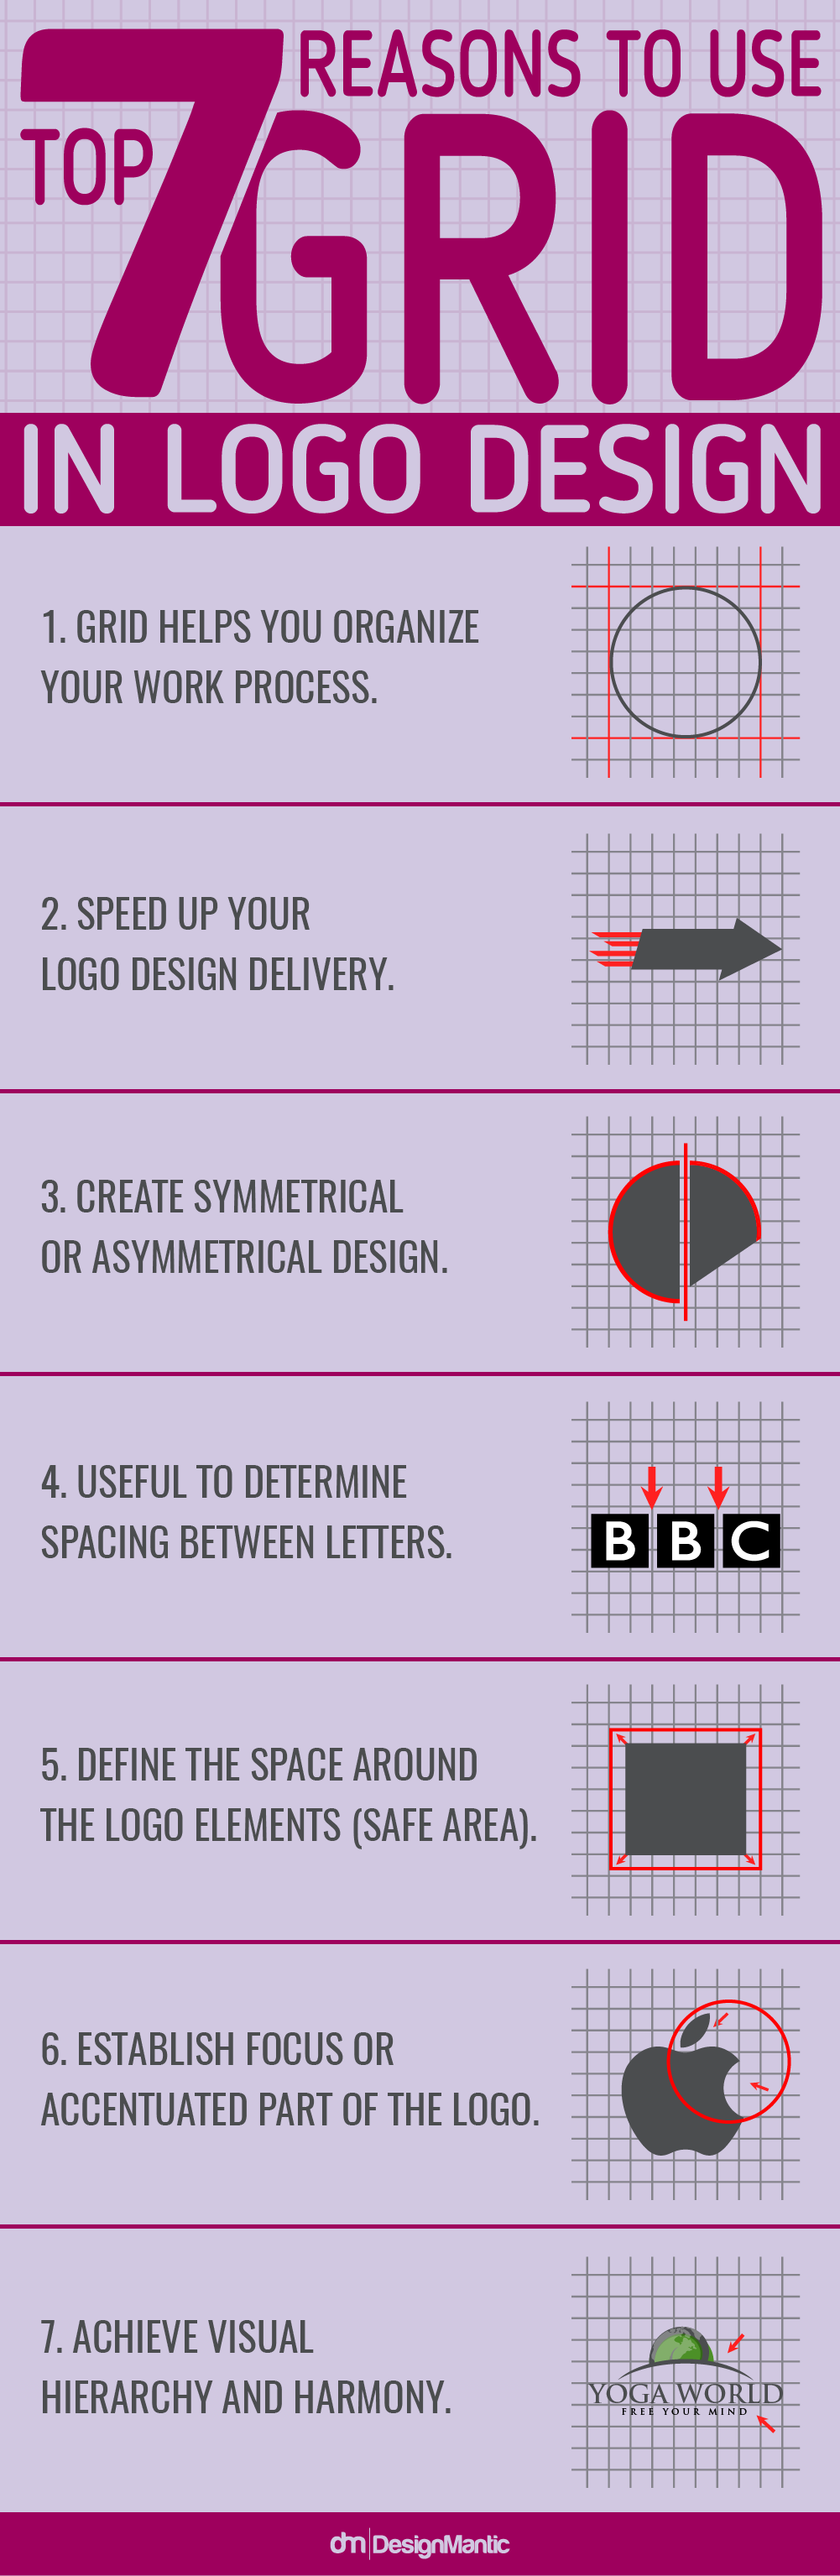 7 Reasons to Use Grids in Logo Design